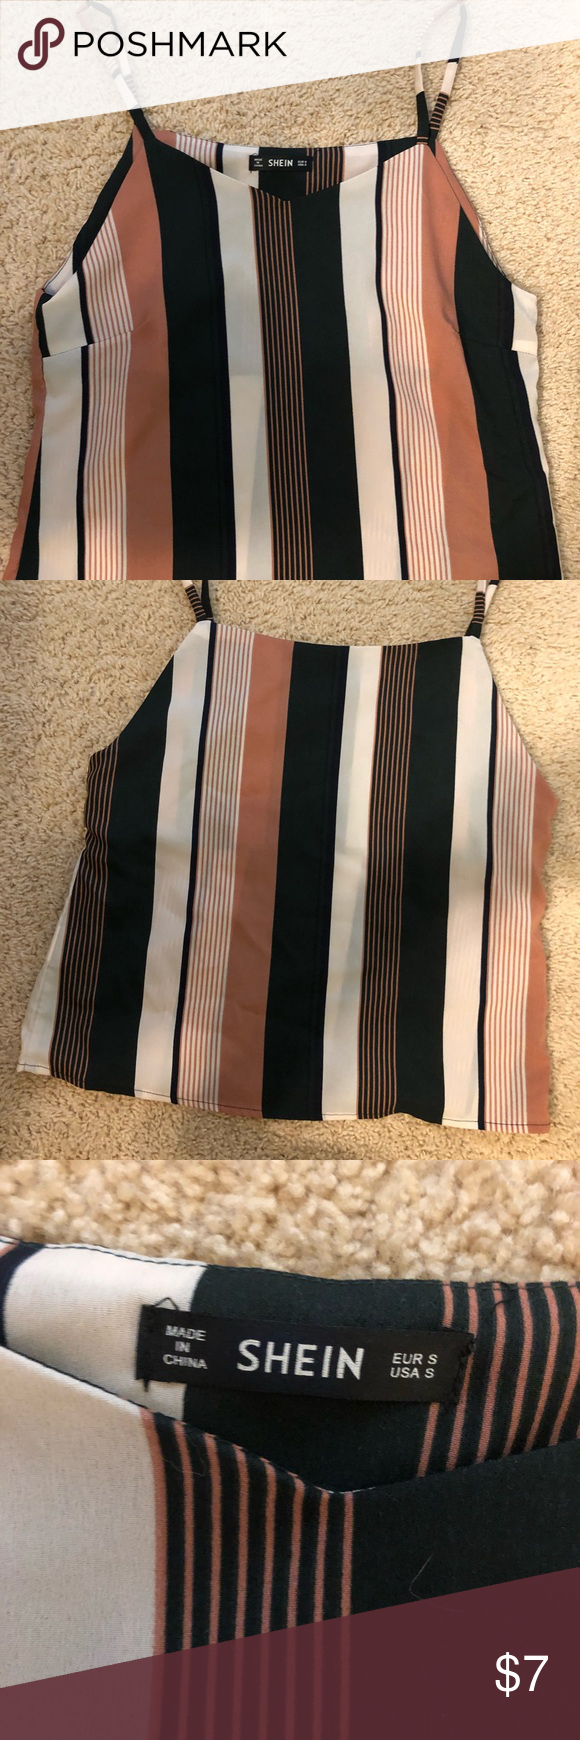 Striped Cami Top A nice striped cami! I bough it online, so there are no tags, and it was just too big for me. SHEIN Tops Camisoles #stripedcamitops Striped Cami Top A nice striped cami! I bough it online, so there are no tags, and it was just too big for me. SHEIN Tops Camisoles #stripedcamitops